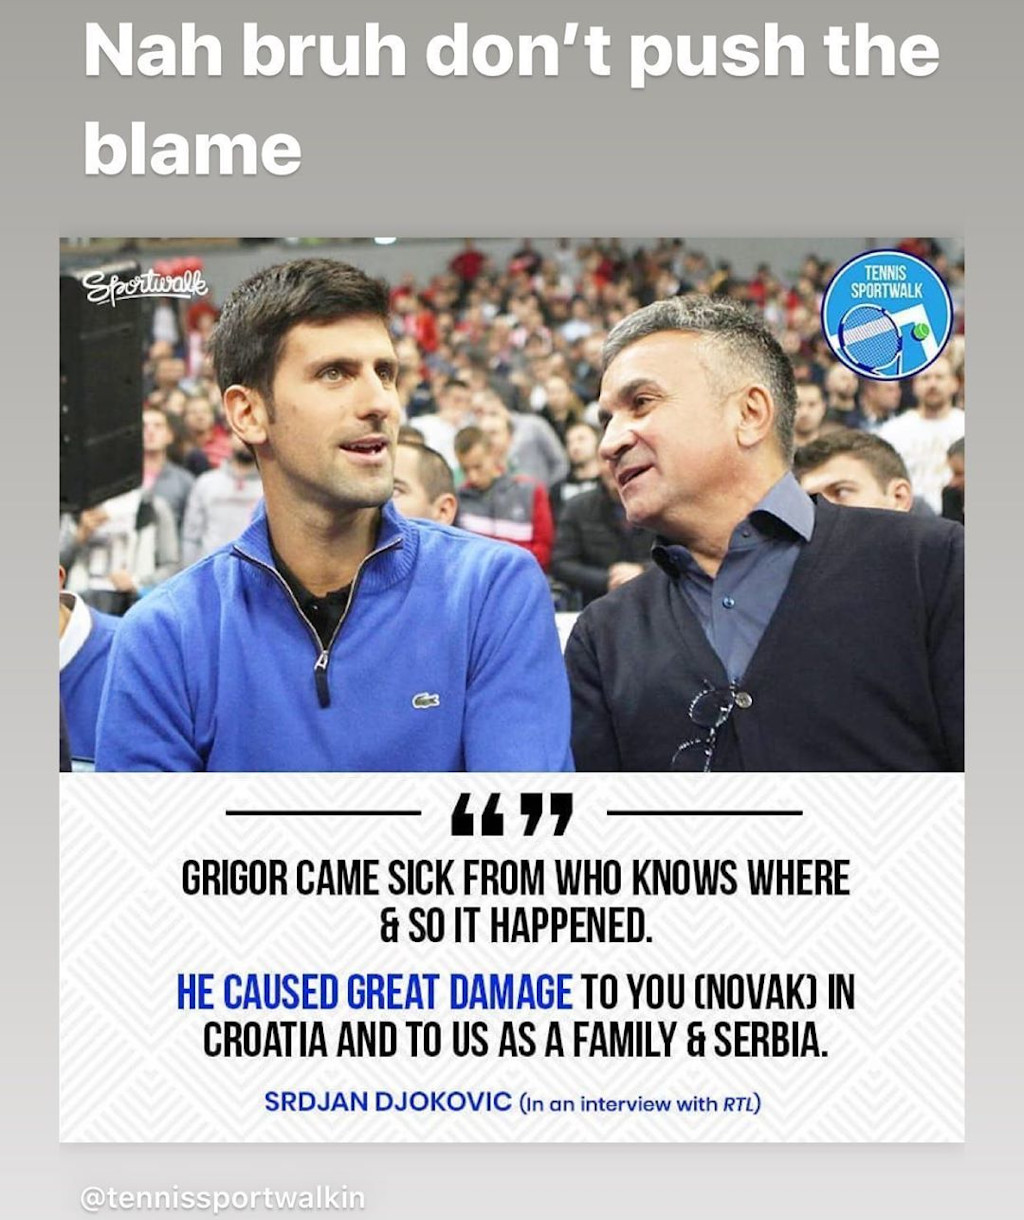 Nick Kyrgios Tells Novak Djokovic S Father Not To Push The Blame Onto Grigor Dimitrov Tennis365 Com